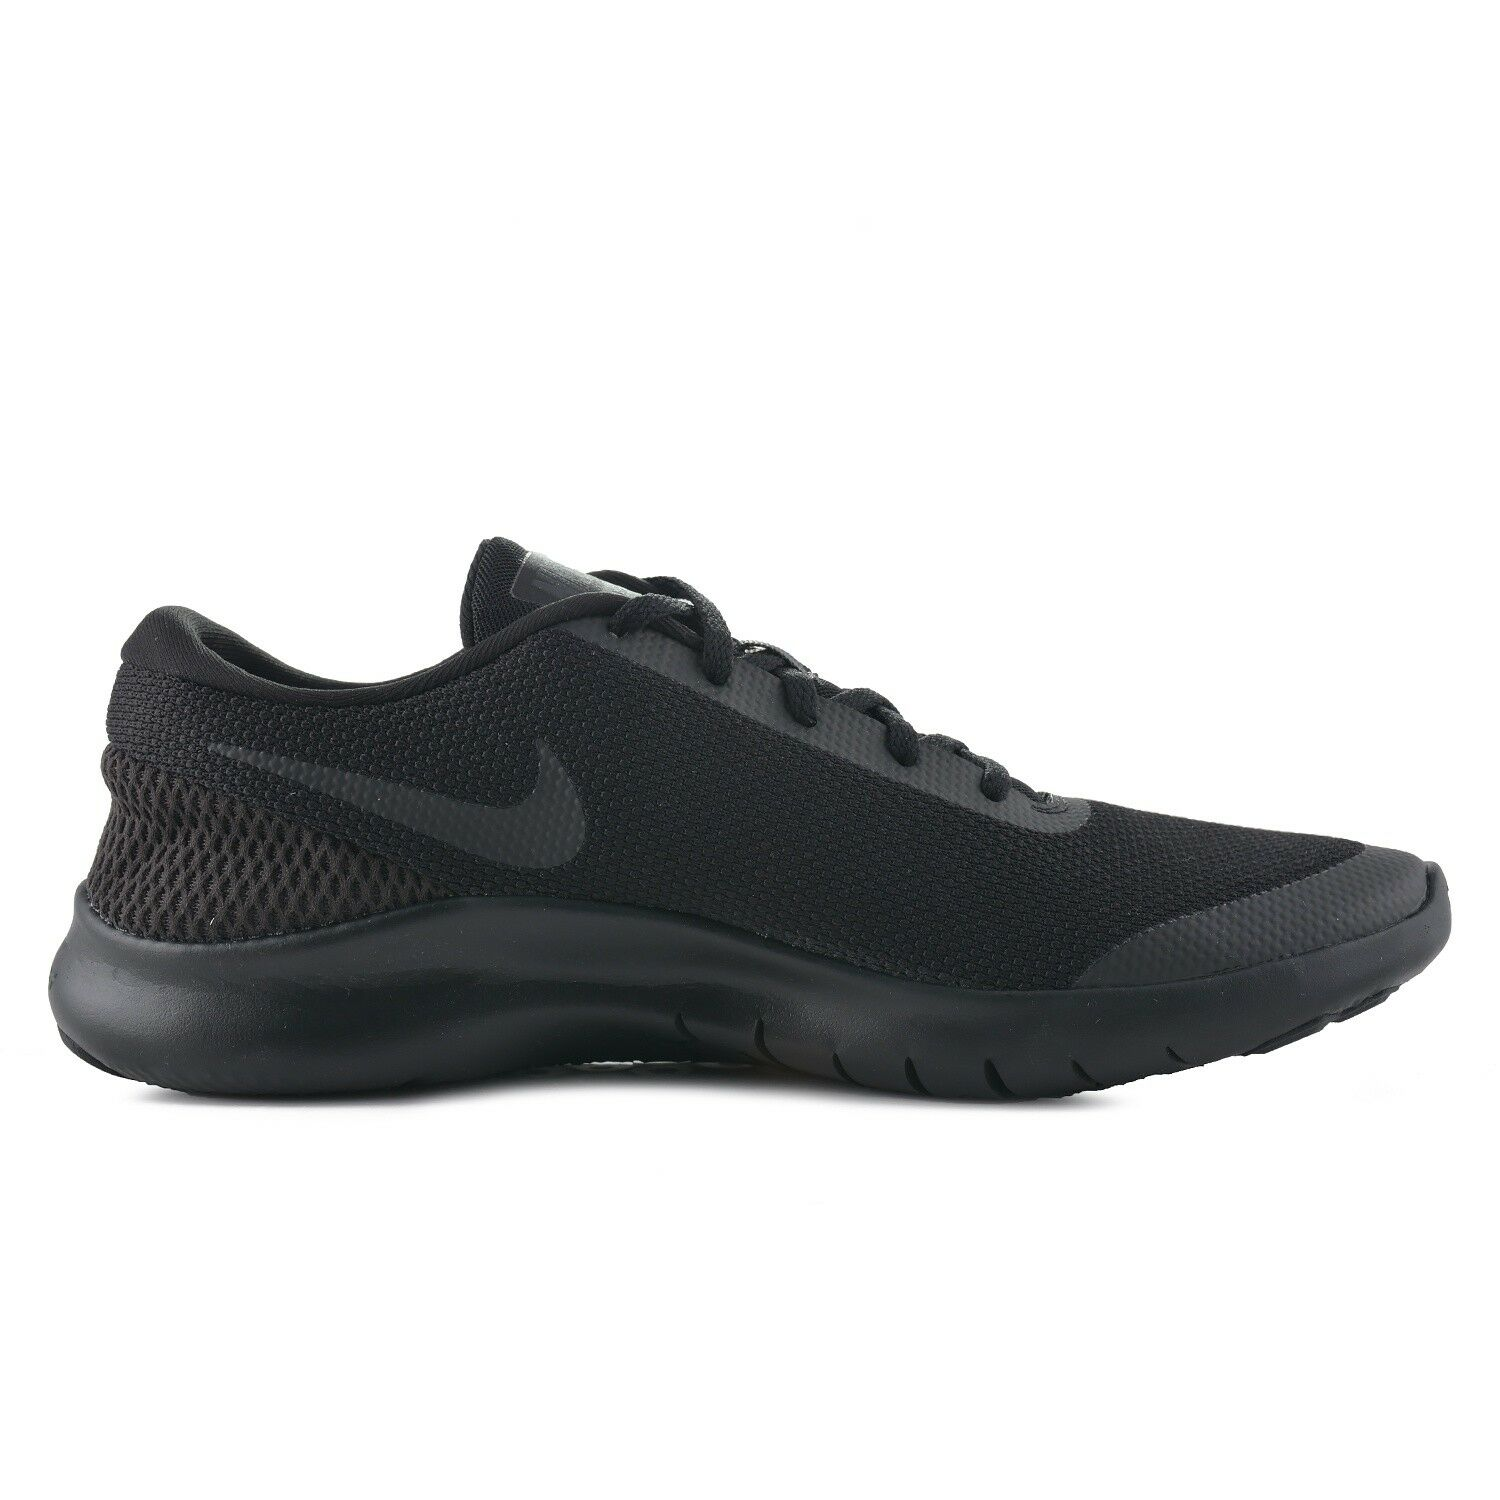 Nike Men's Flex Experience RN 7 Mens Running Shoes (908985 002) Black/Anthracite